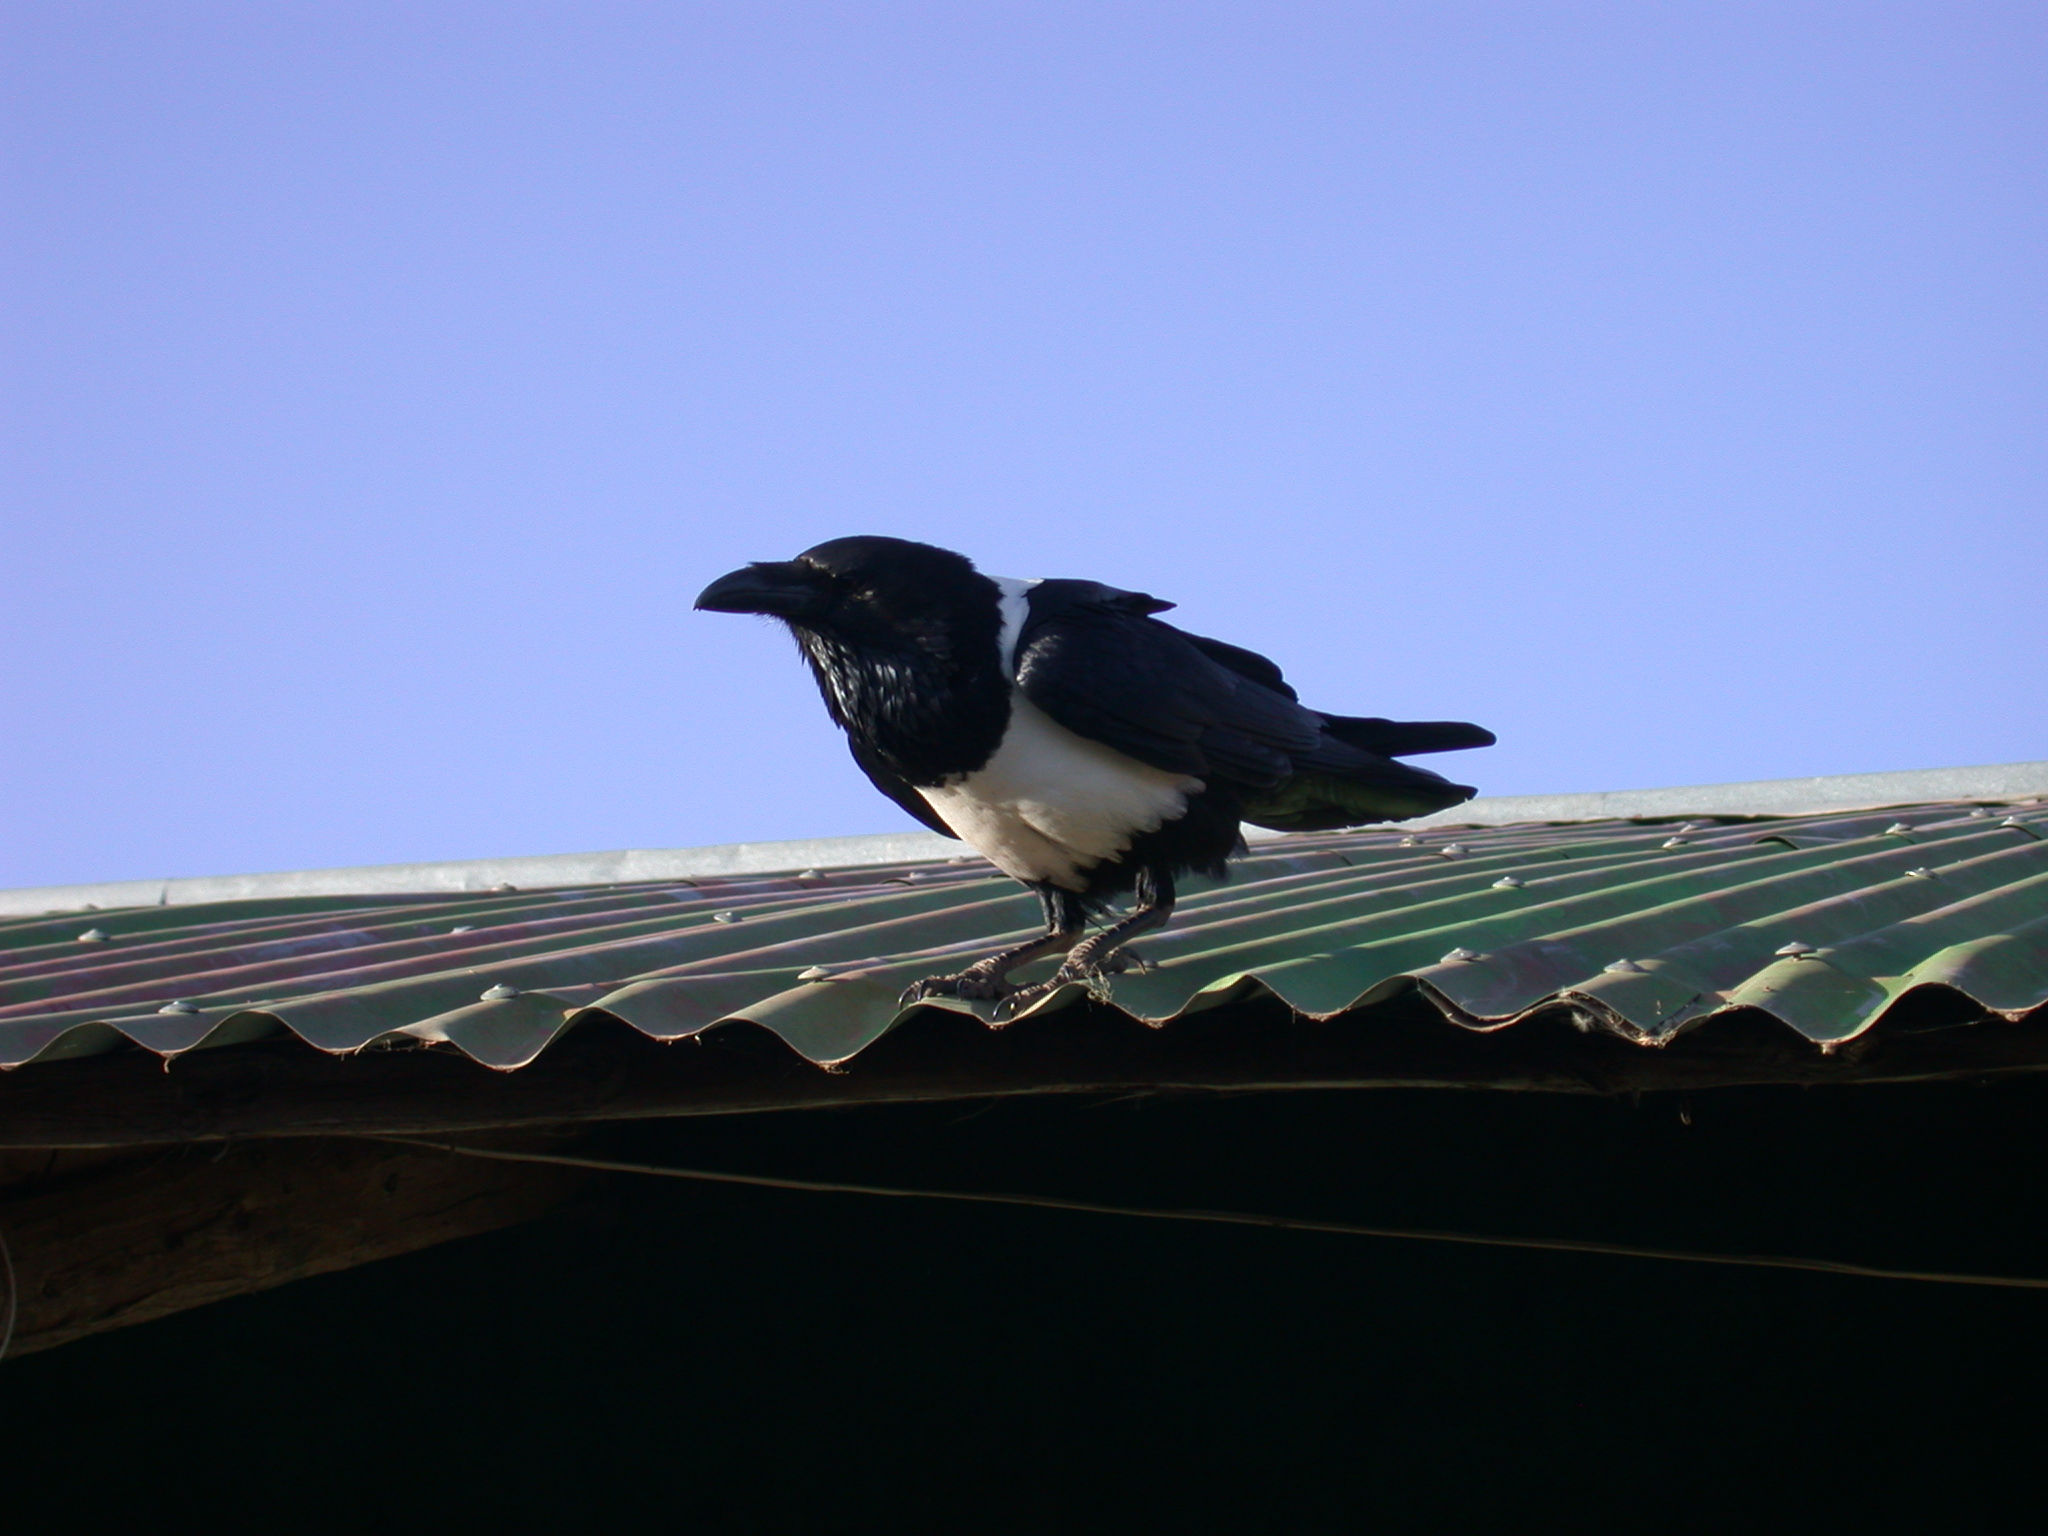 Bird on Lodge Roof, Trek at Sankaber Camp, Simien Mountains, Ethiopia